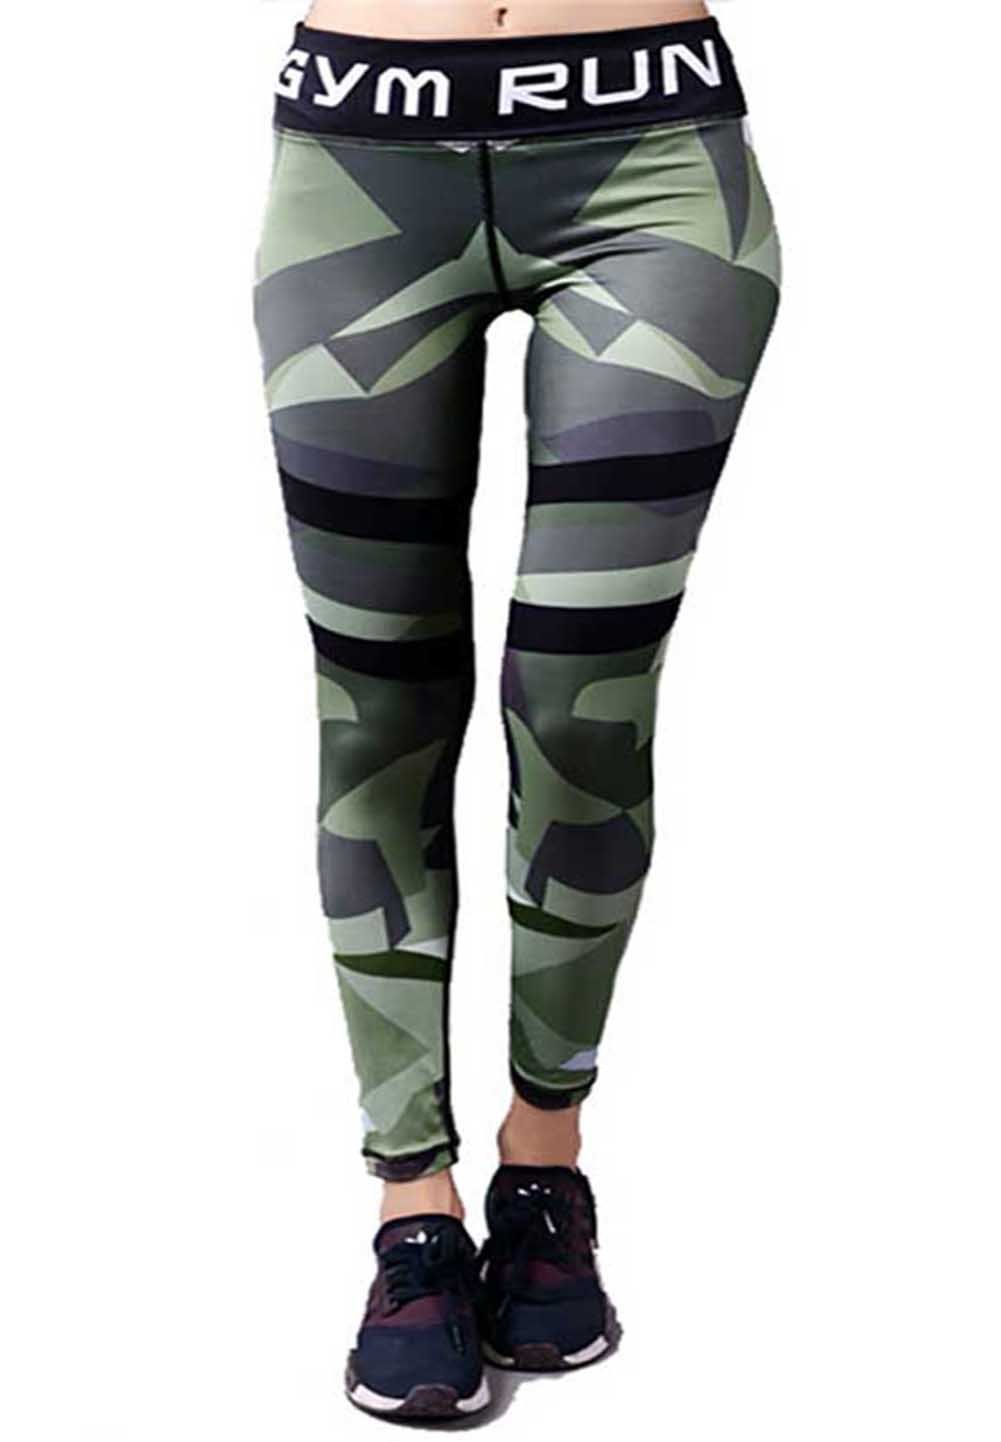 camgo Women's Yoga Pants Capris Leggings for Fitness Workout Gym Sports (S, Camouflage)